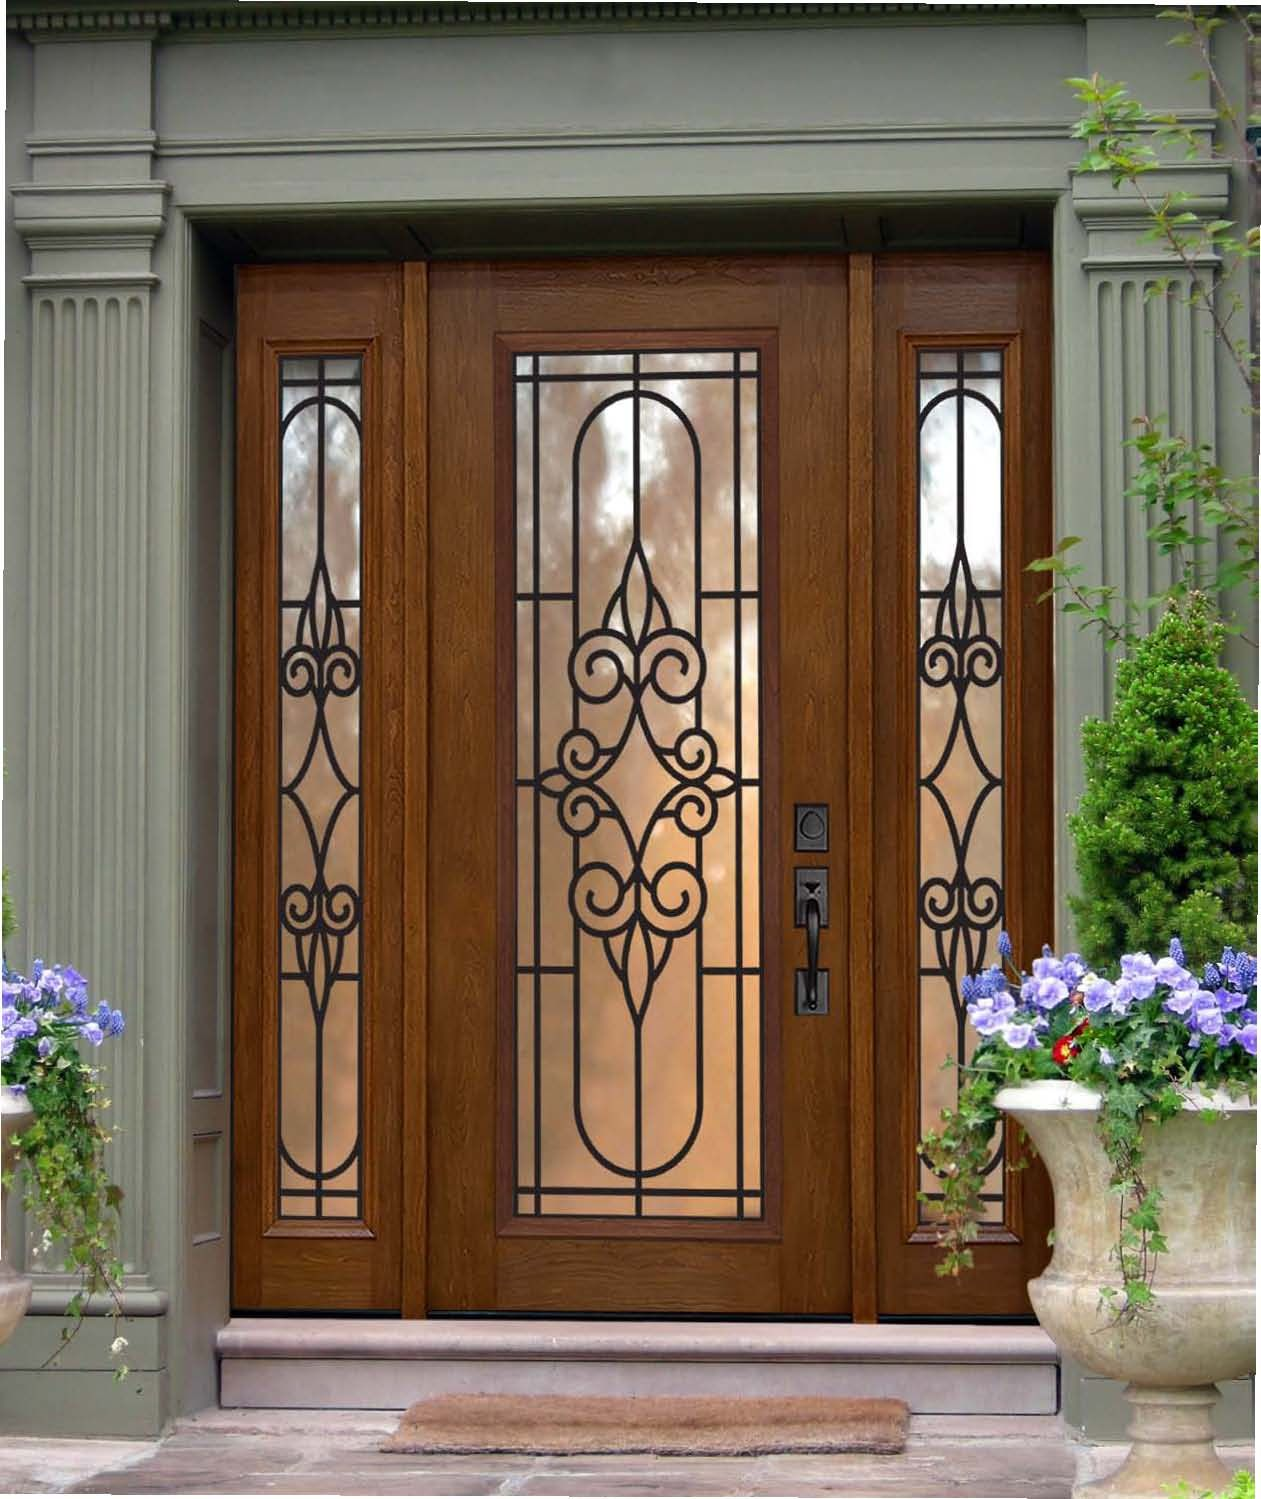 Entry doors sidelights this is what i would love to for Fiberglass entry doors with sidelights